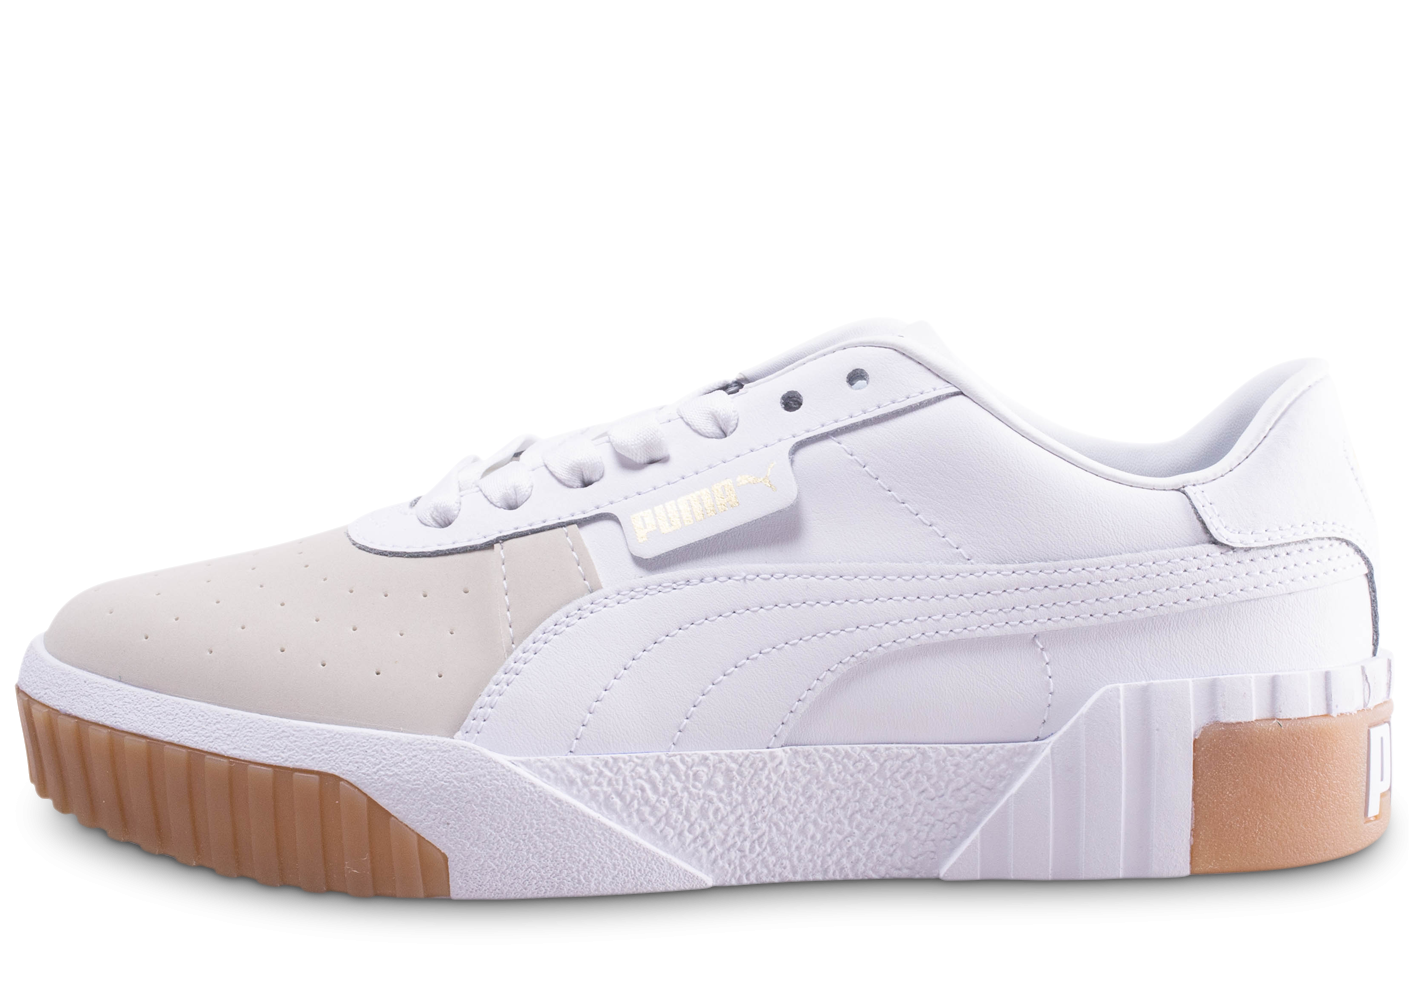 chaussures pumas femme